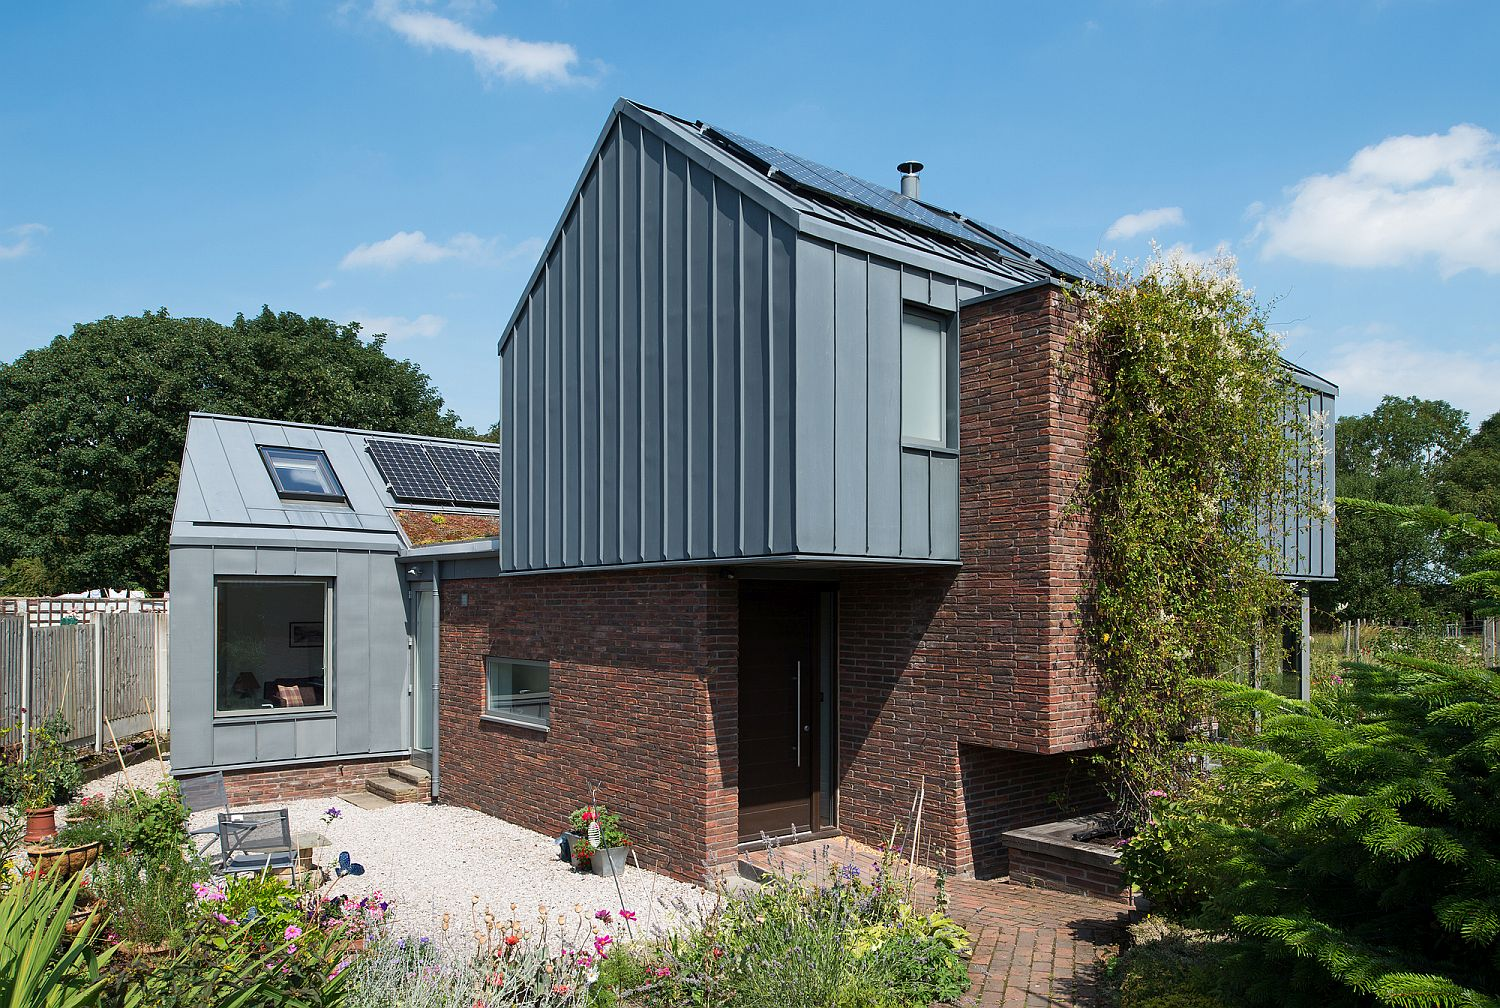 Gorgeous-home-with-pre-fabricated-cross-laminated-timber-structure-and-zinc-charm